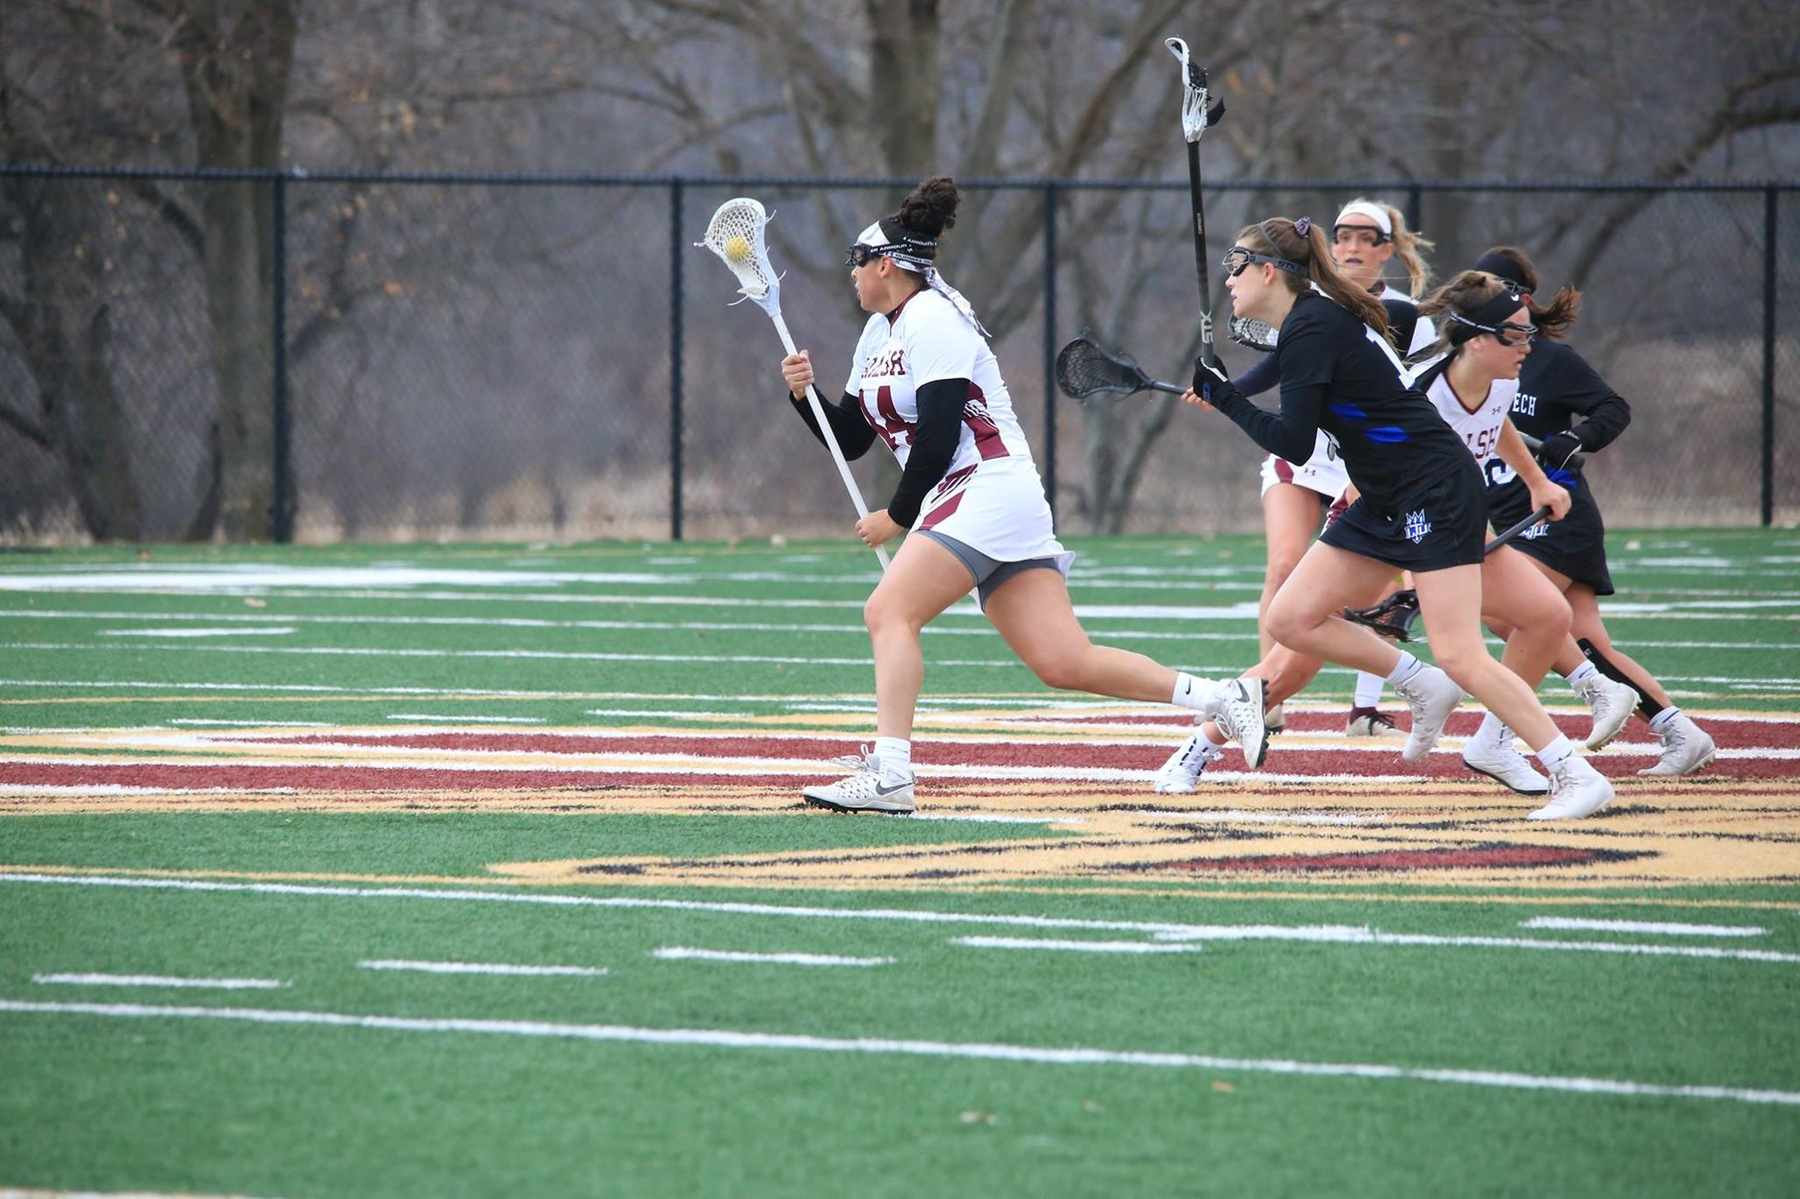 Women's Lacrosse Defeats NAIA Ranked Tigers, 21-13